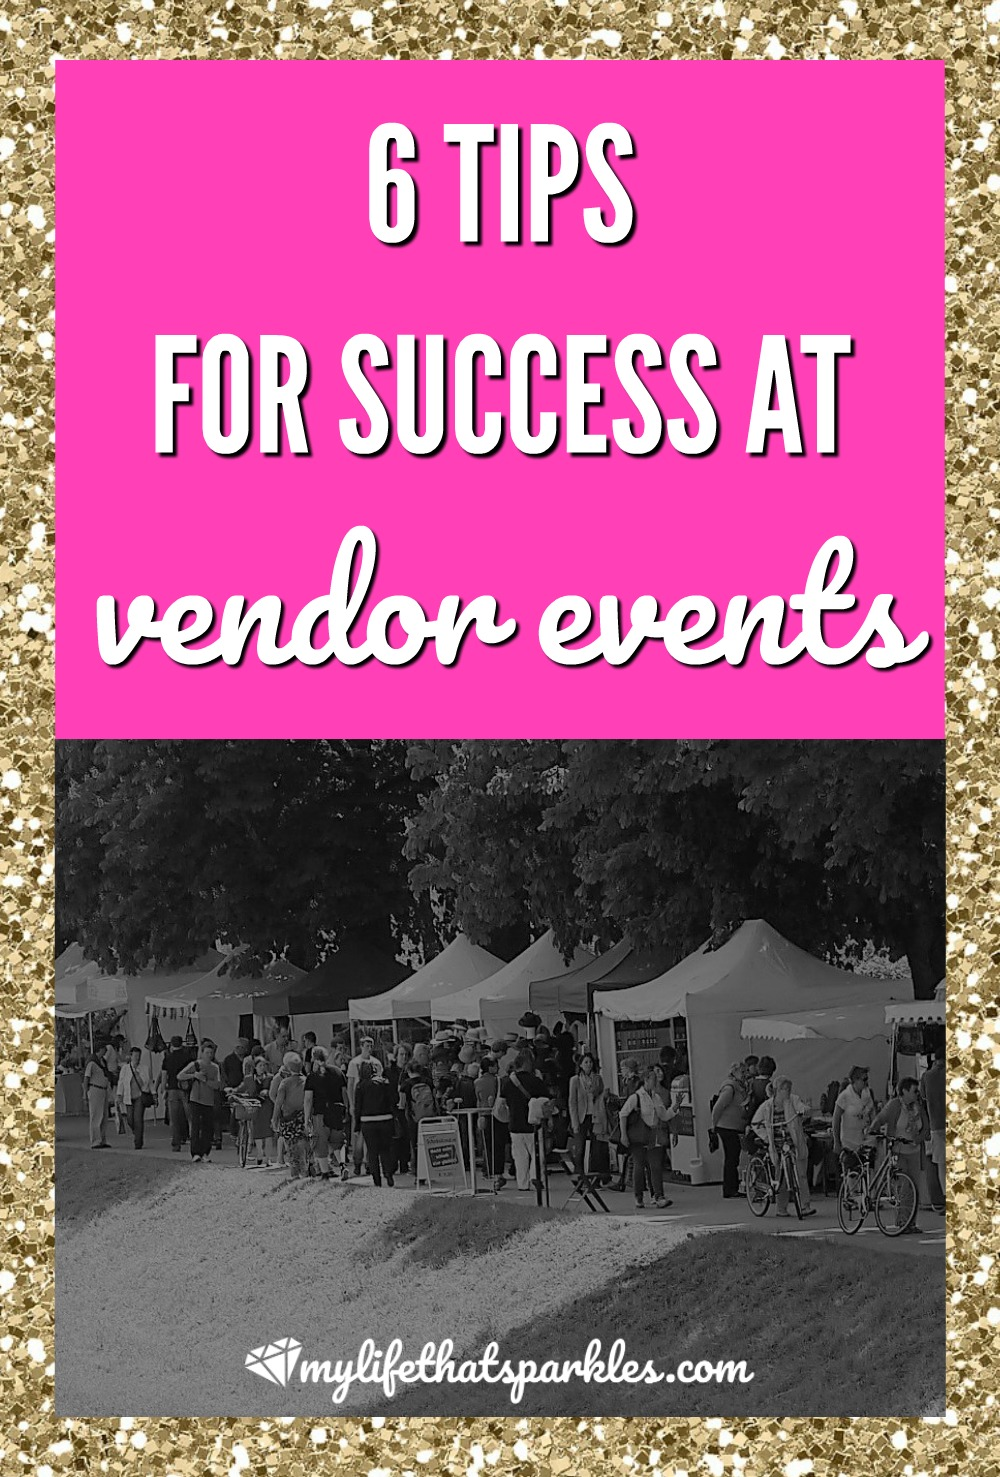 6 Things You Can Do to have a Successful Origami Owl Vendor Event